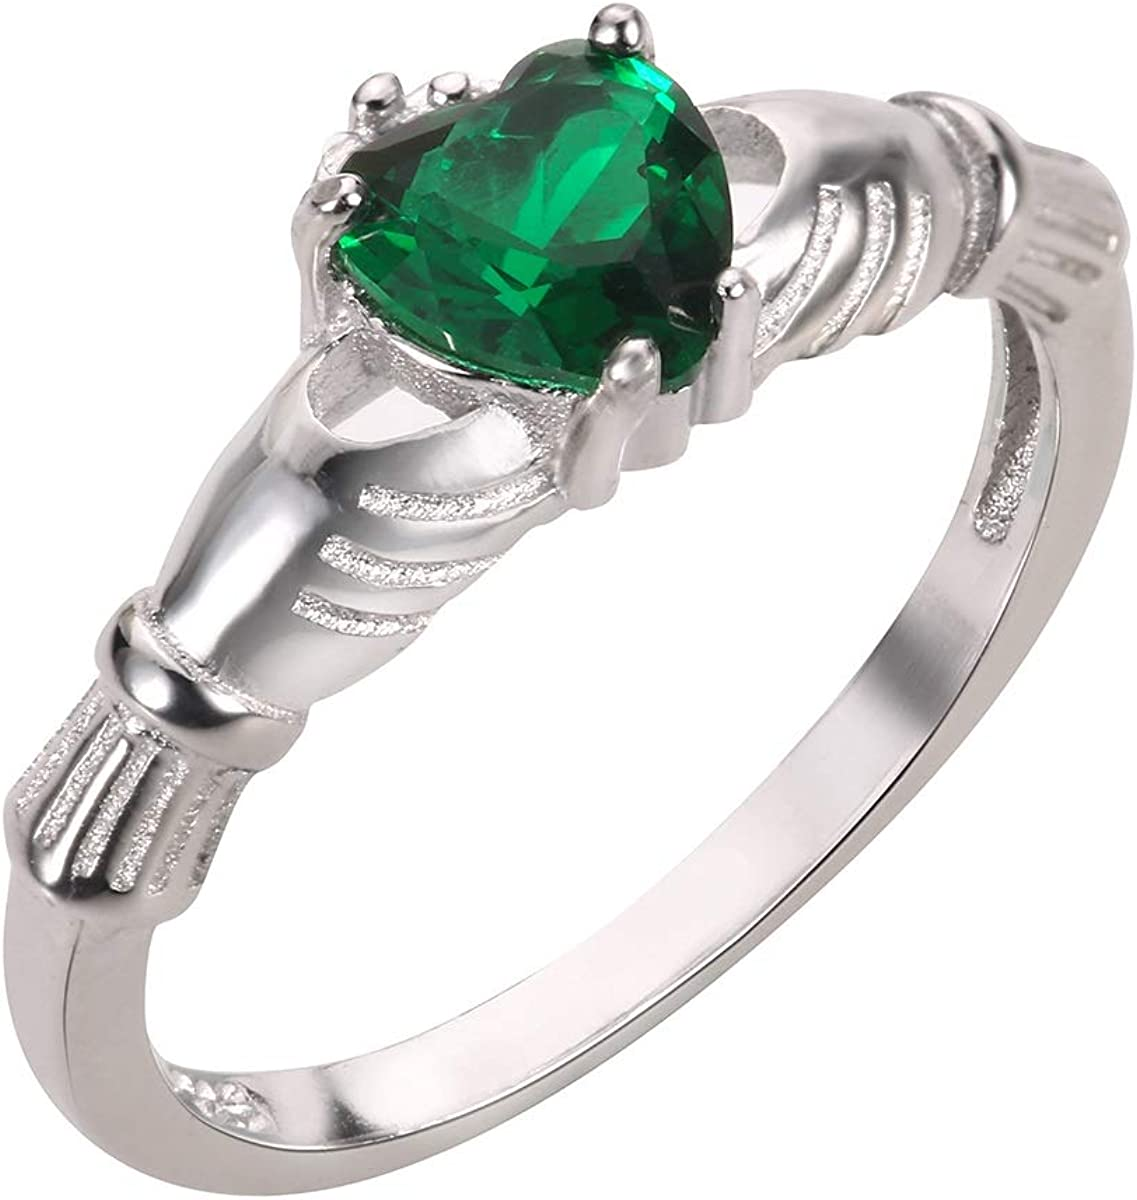 CloseoutWarehouse Simulated Emerald Cubic Special price for a limited time Bene Seattle Mall Claddagh Zirconia